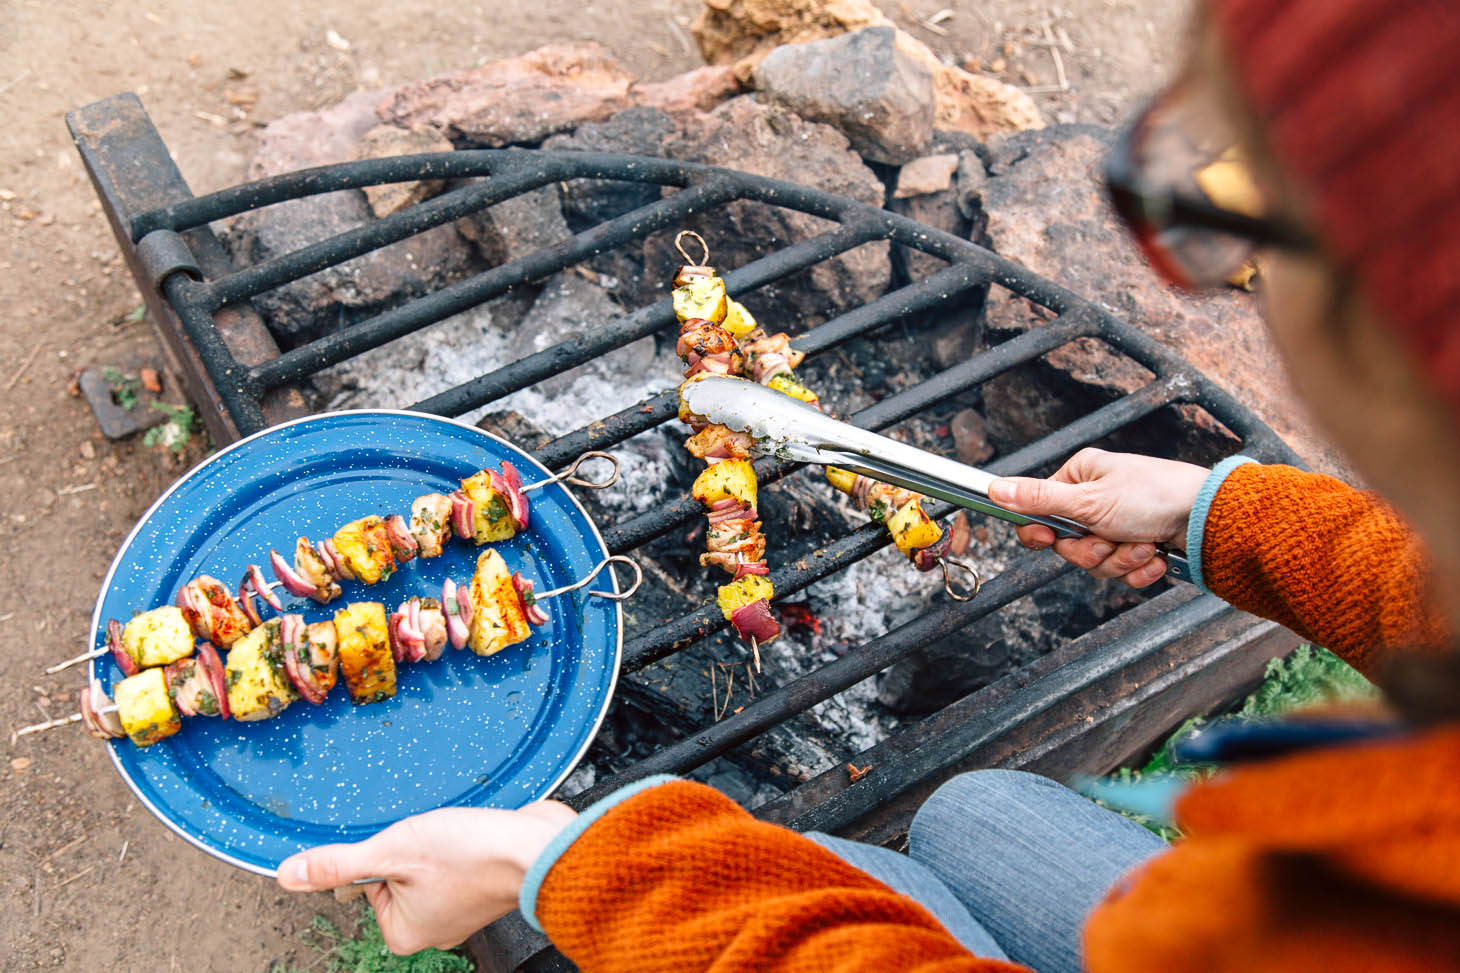 Grilling chicken pineapple kabobs over a campfire